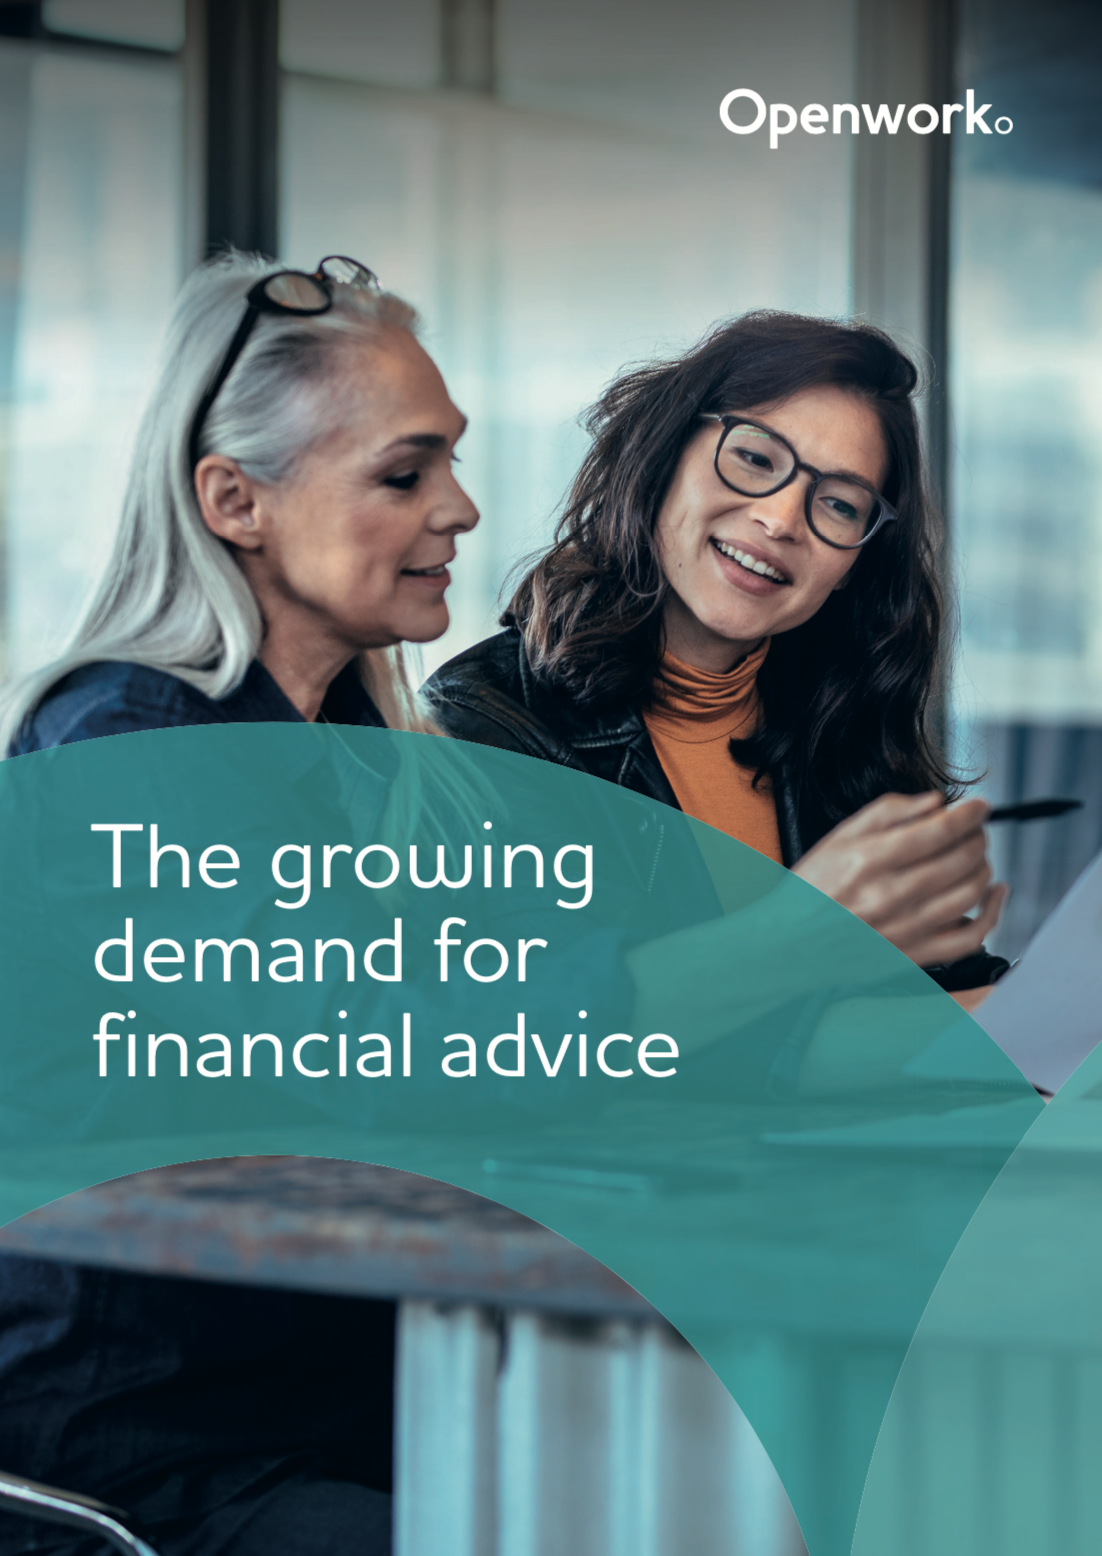 The growing demand for financial advice